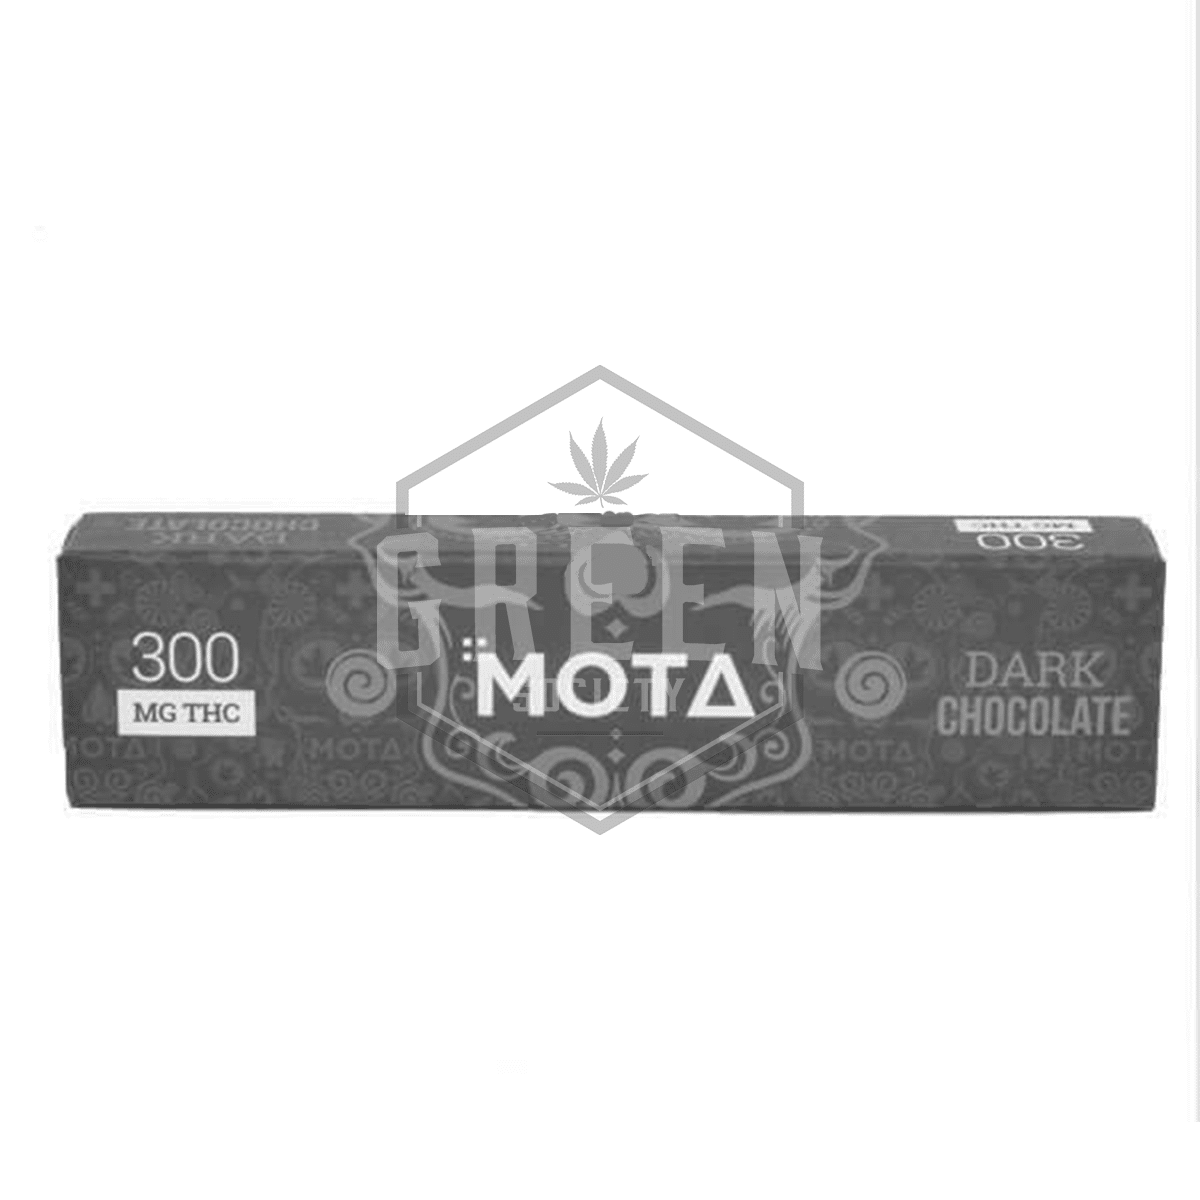 Dark Chocolate Bar (THC 300mg) by MOTA Cannabis by Green Society - Image © 2018 Green Society. All Rights Reserved.